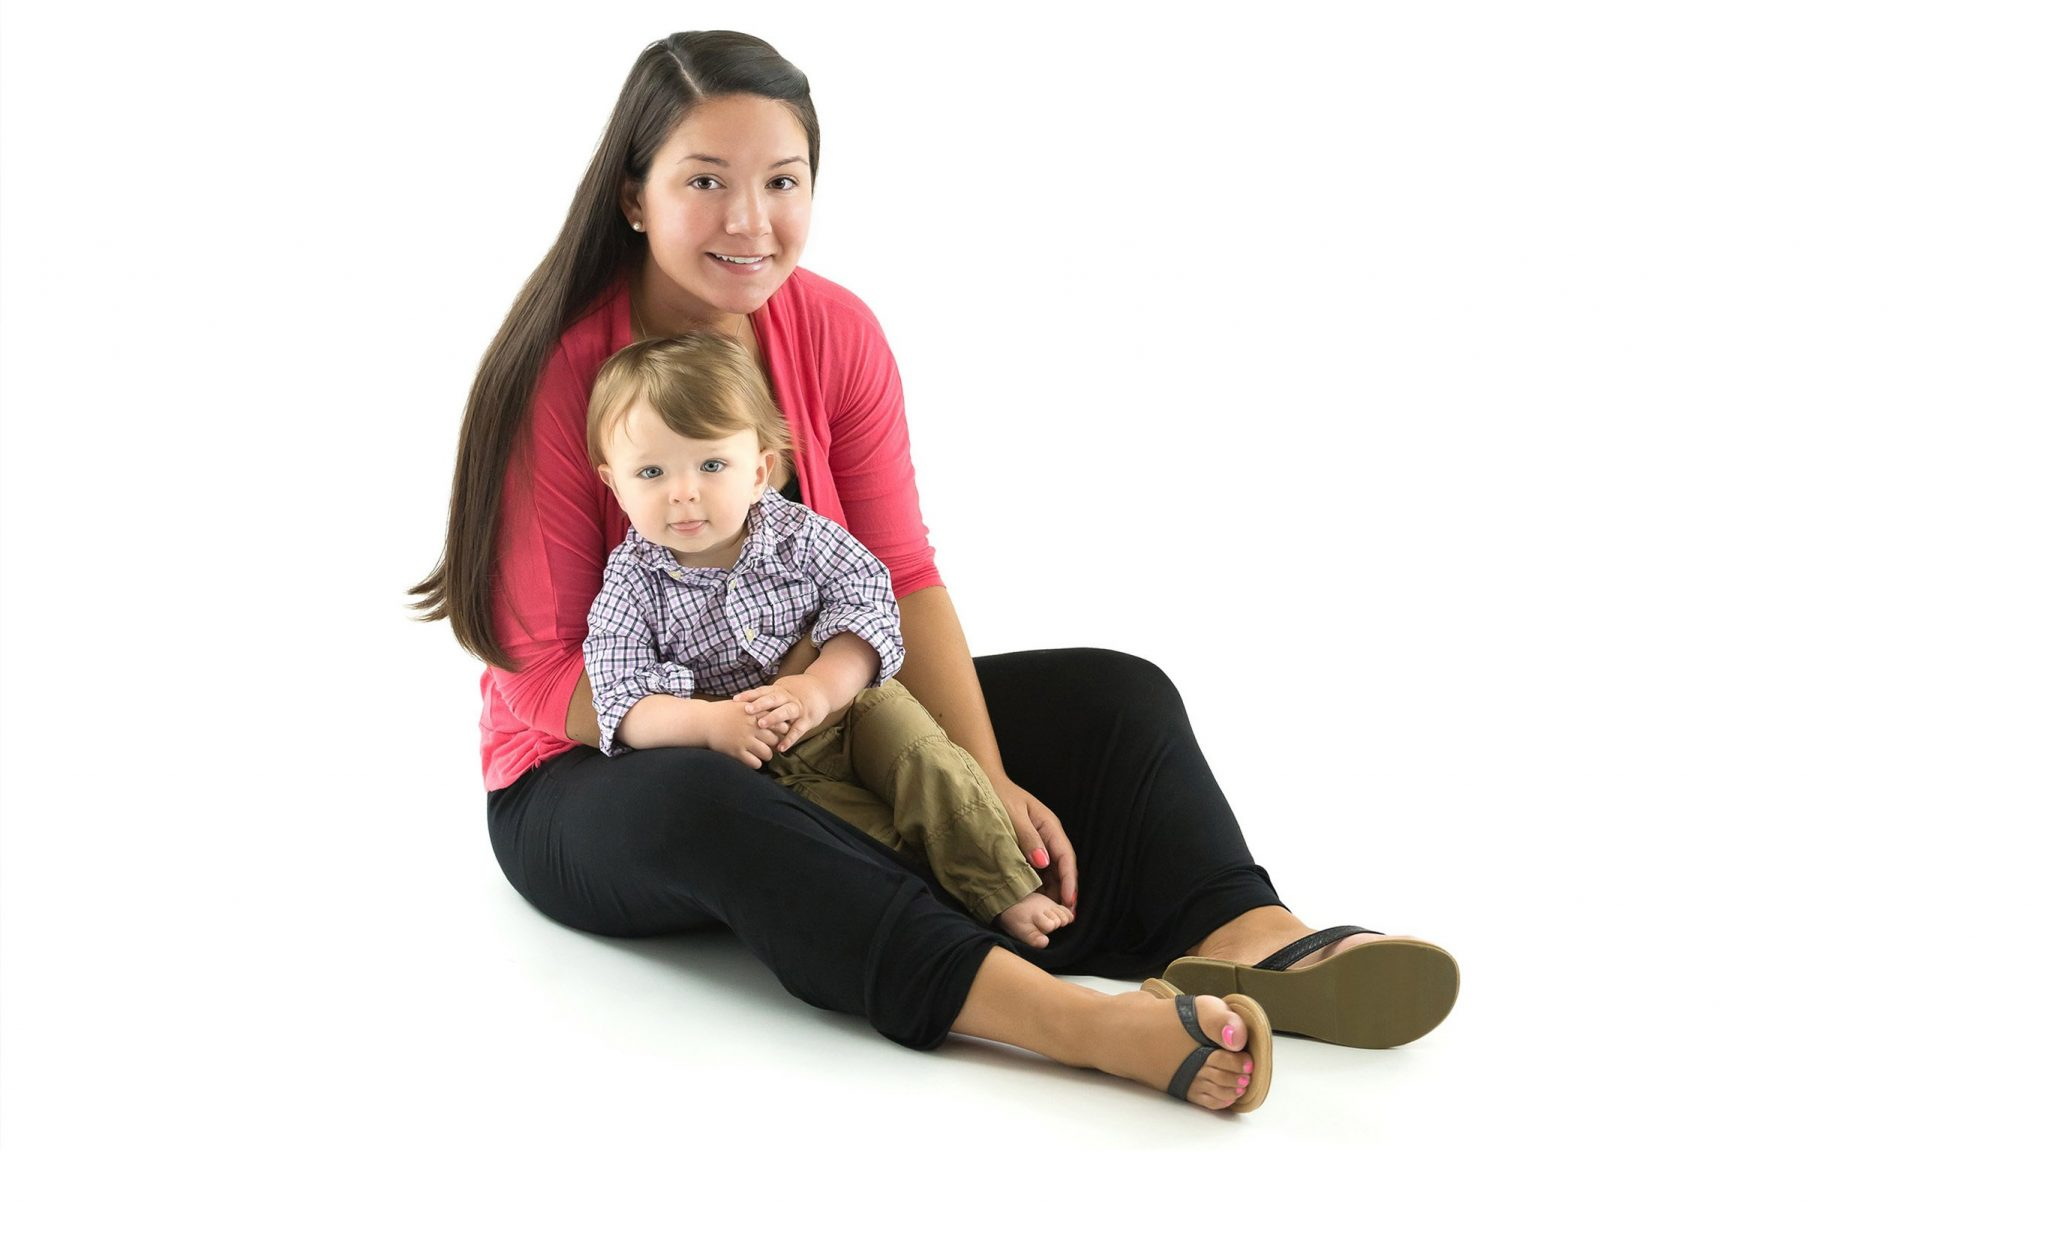 Professional family photos, Family pictures, family photography, family portraits, children's pictures, children's portraits, children's photography, studio portrait in Brevard County Florida - Truly Madly Deeply www.tmd.photo